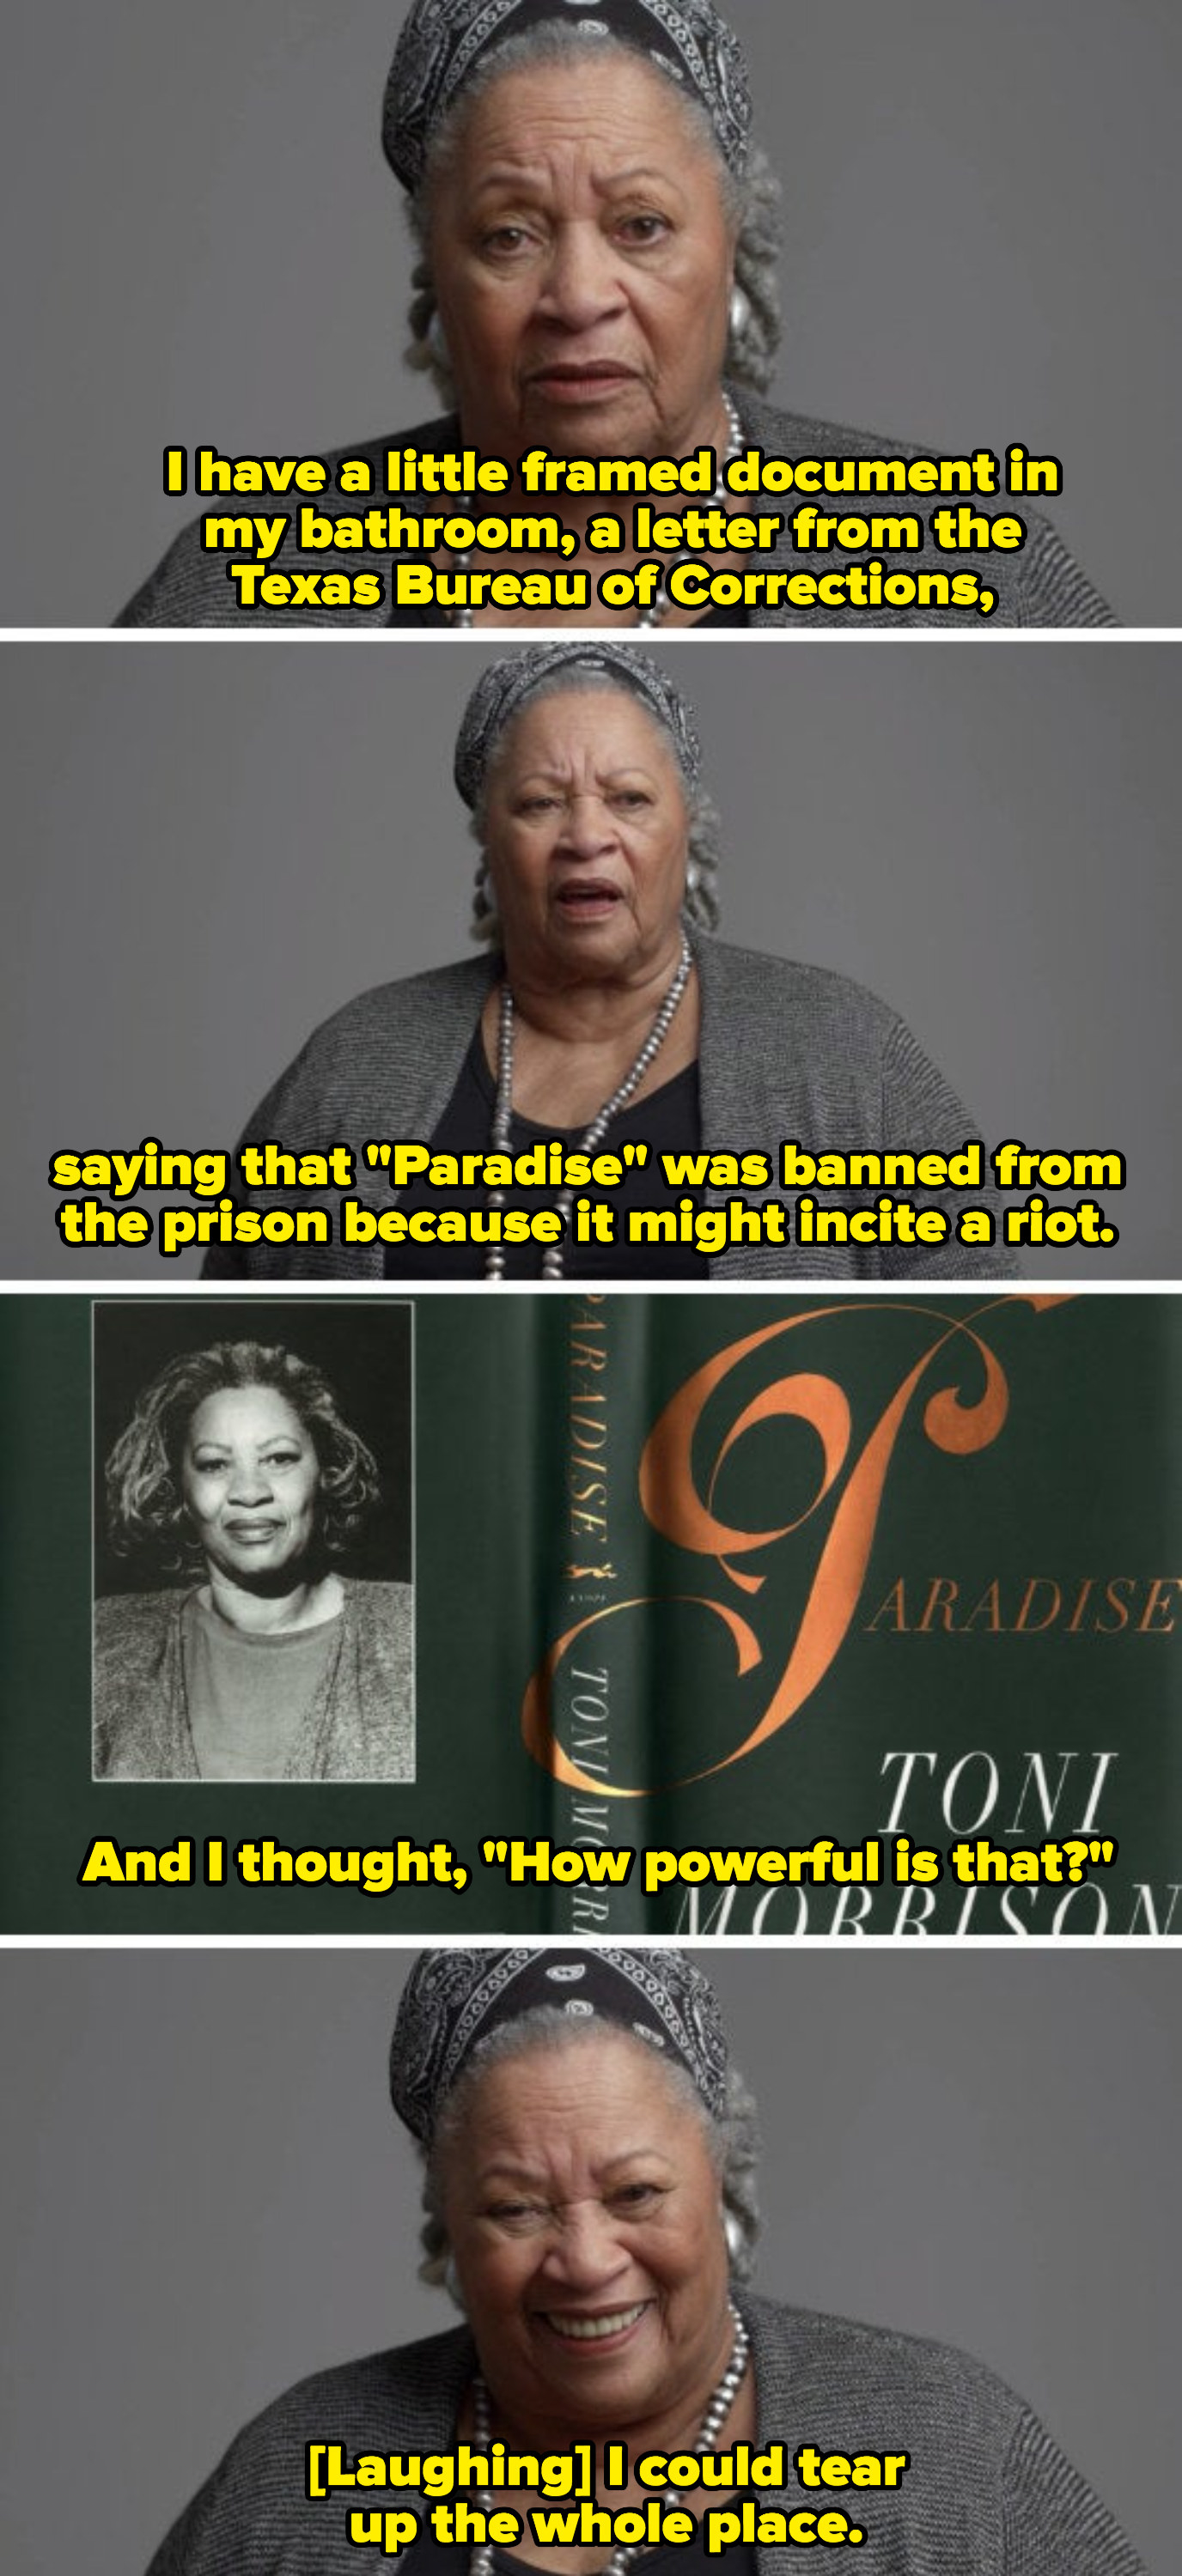 """Toni Morrison discussing a Texas prison banning her novel """"Paradise,"""" saying: """"And I thought, 'How powerful is that?' I could tear up the whole place"""""""